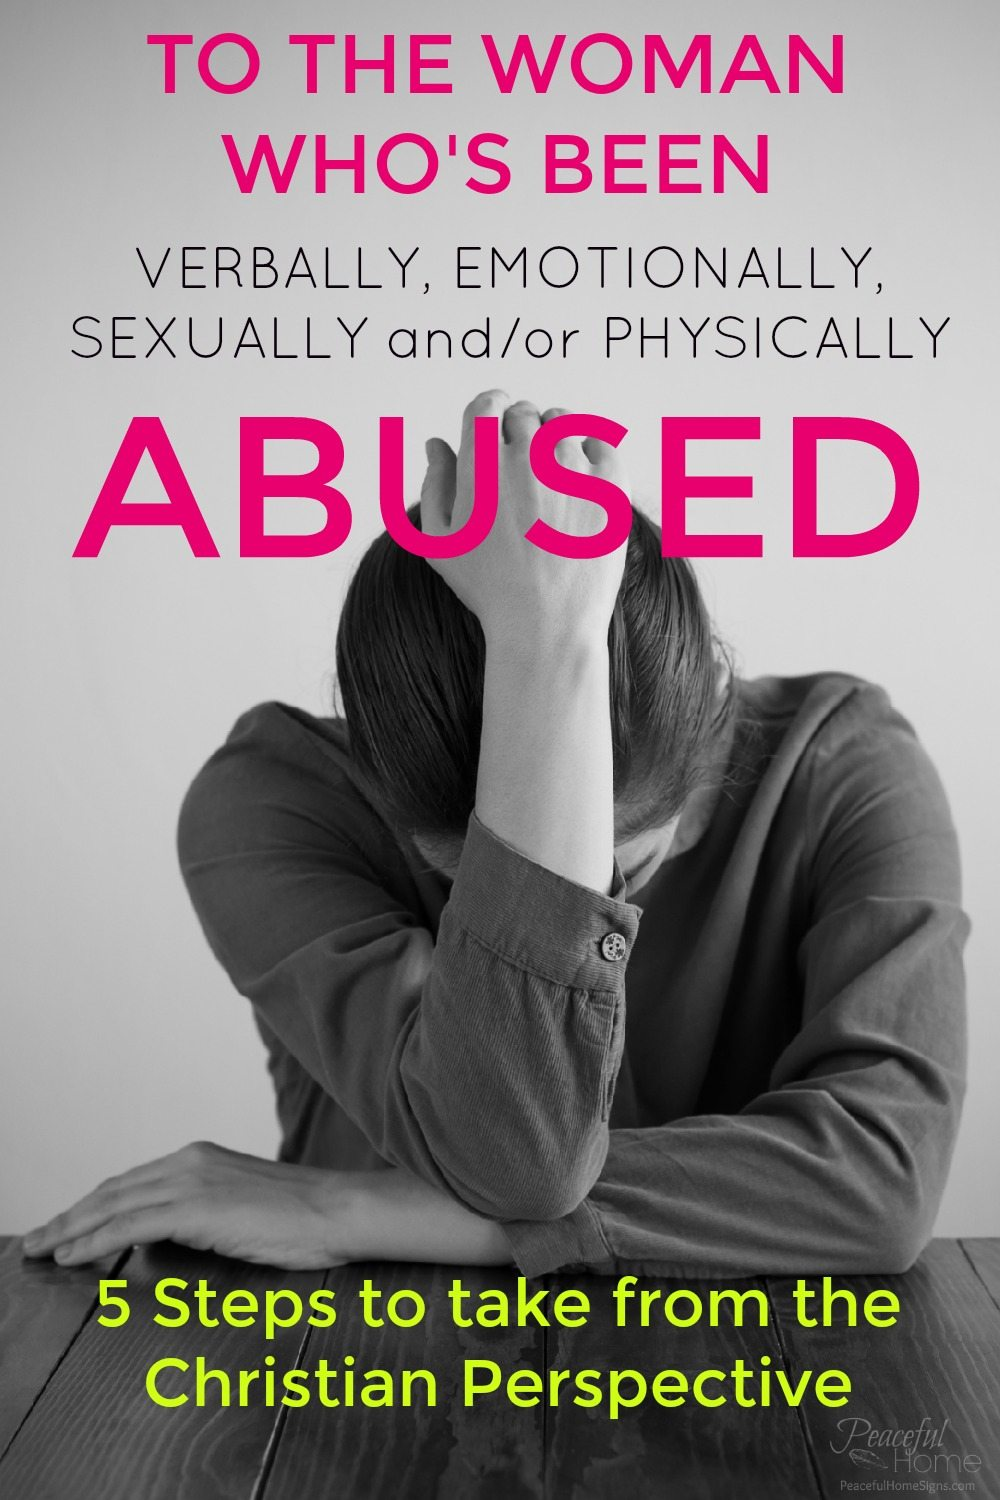 Godly Advise for Victims of Abuse   What to do when my husband abuses me   Verbal Emotional Sexual Physical Abuse   Christian Marriage Advice   When to separate from my husband   Godly Counsel on Marriage